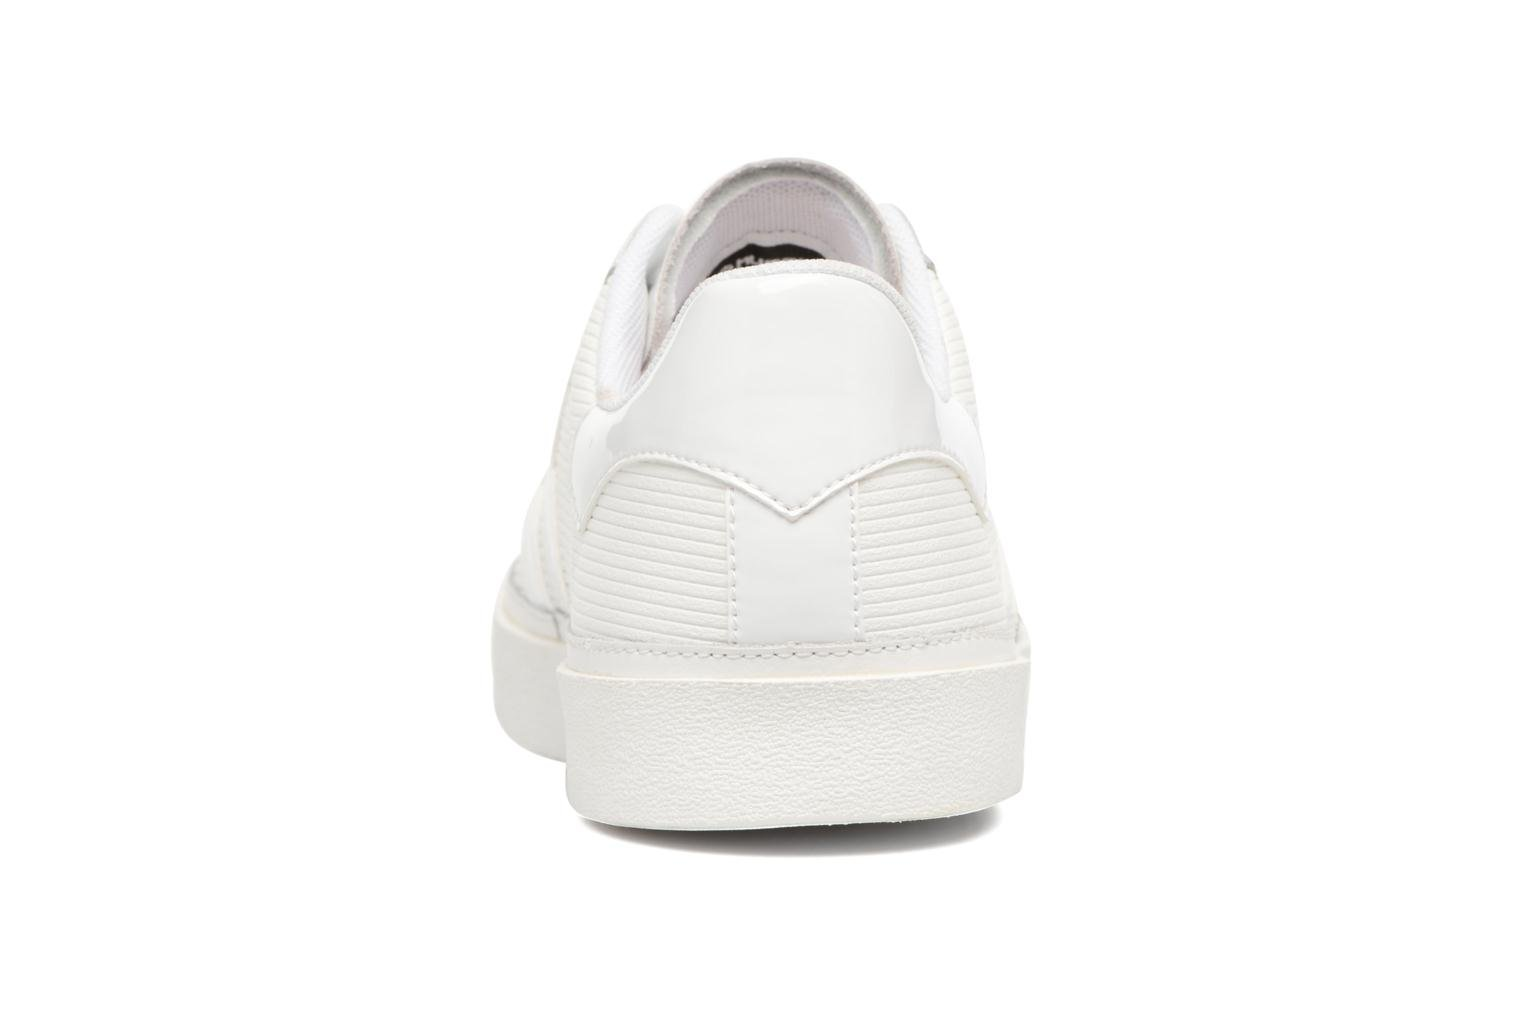 Trainers Hummel Diamant White Stripes White view from the right